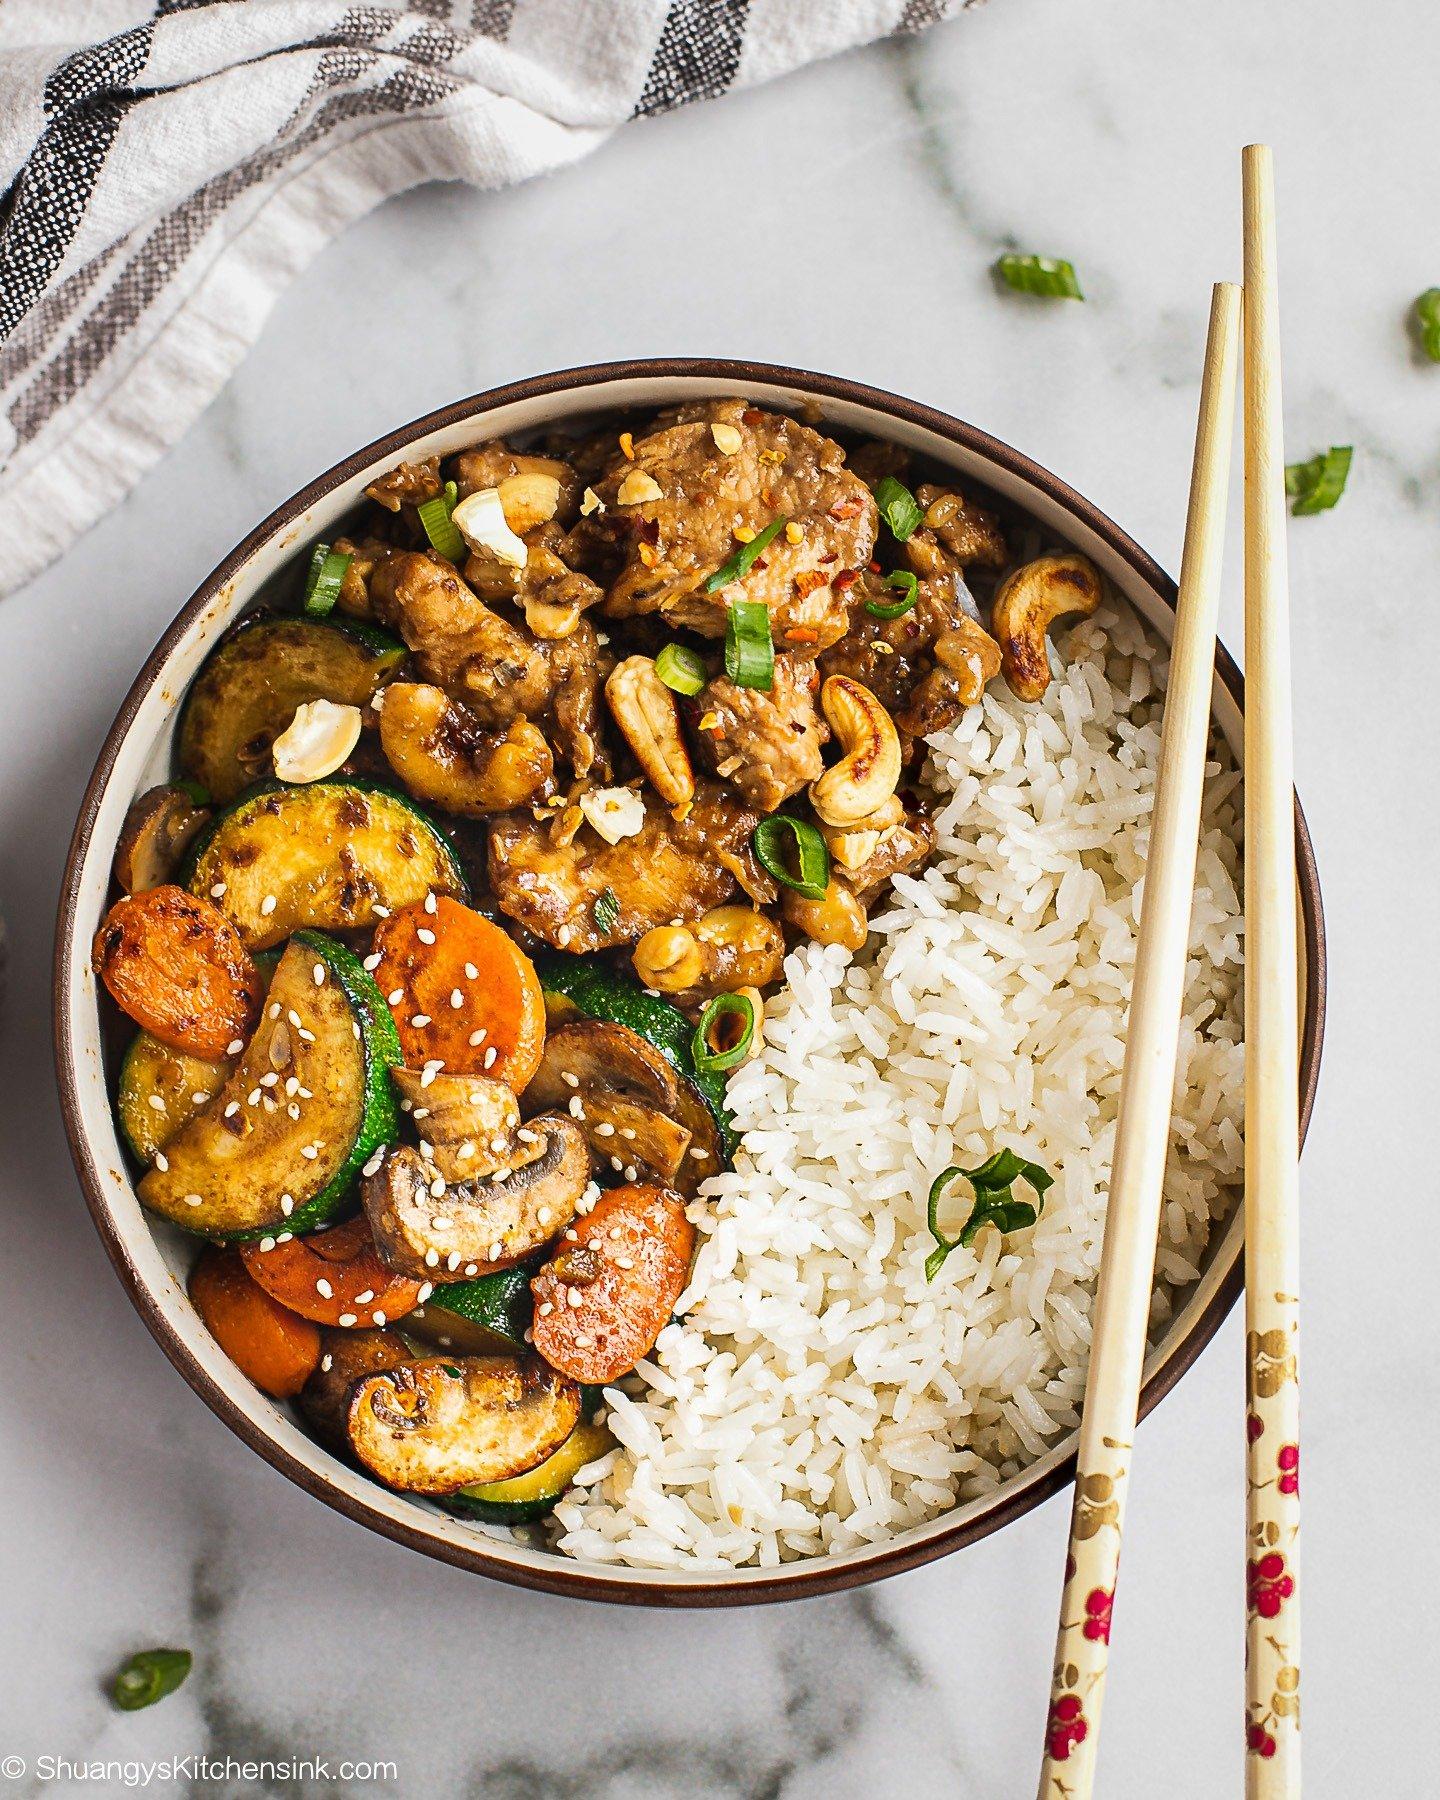 A bowl of Jasmin rice and stir fried zucchini, carrots and mushrooms. There are also chop sticks.